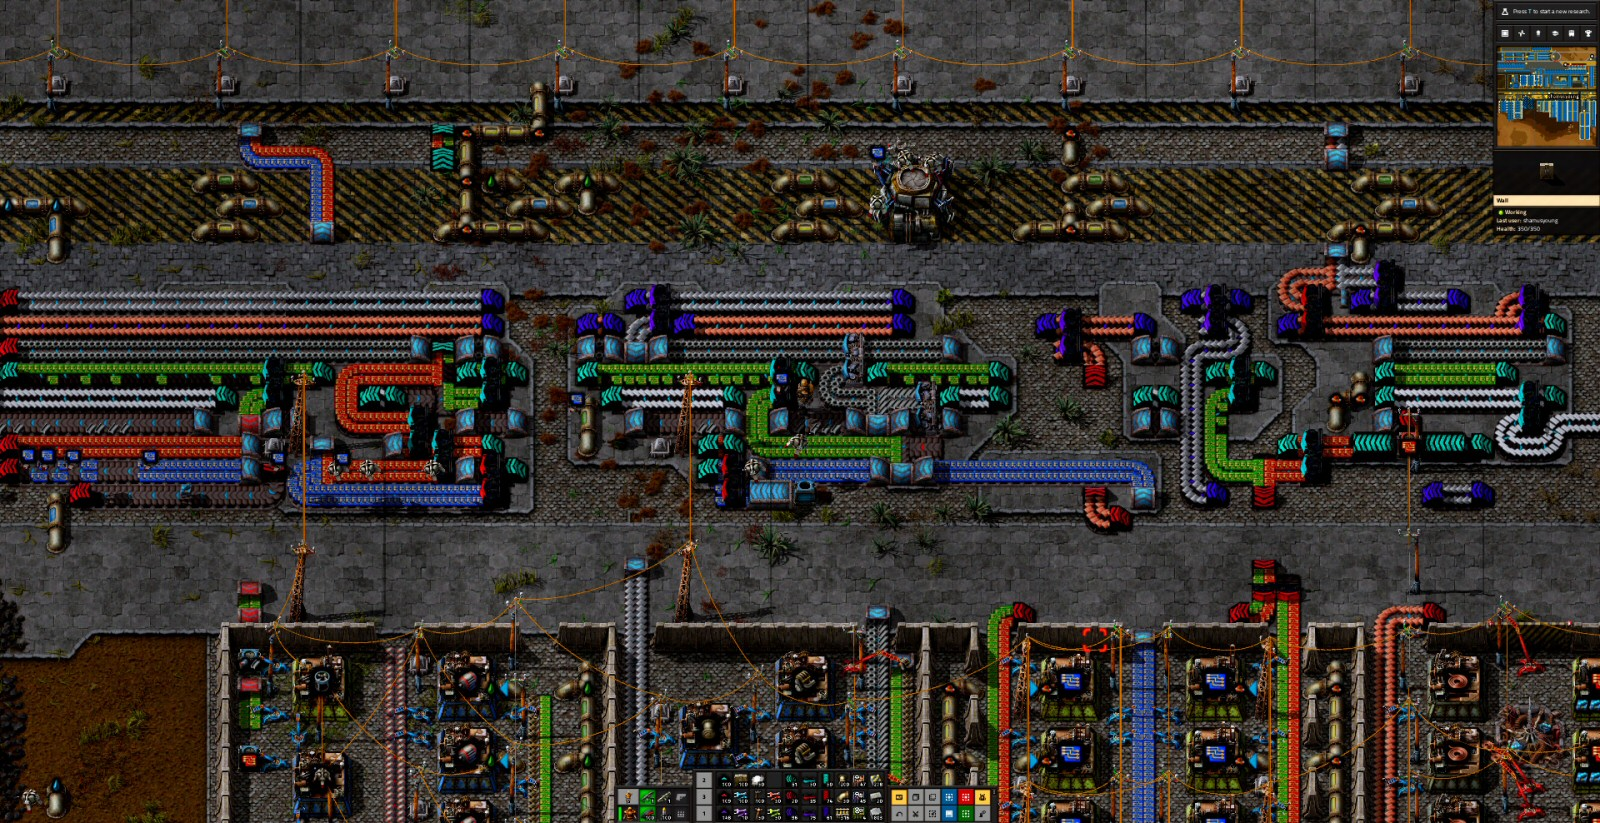 Here my conveyor bus runs right-to-left. Sometimes the positioning of resources on the map will force me to go against my preference of building horizontally, left-to-right.